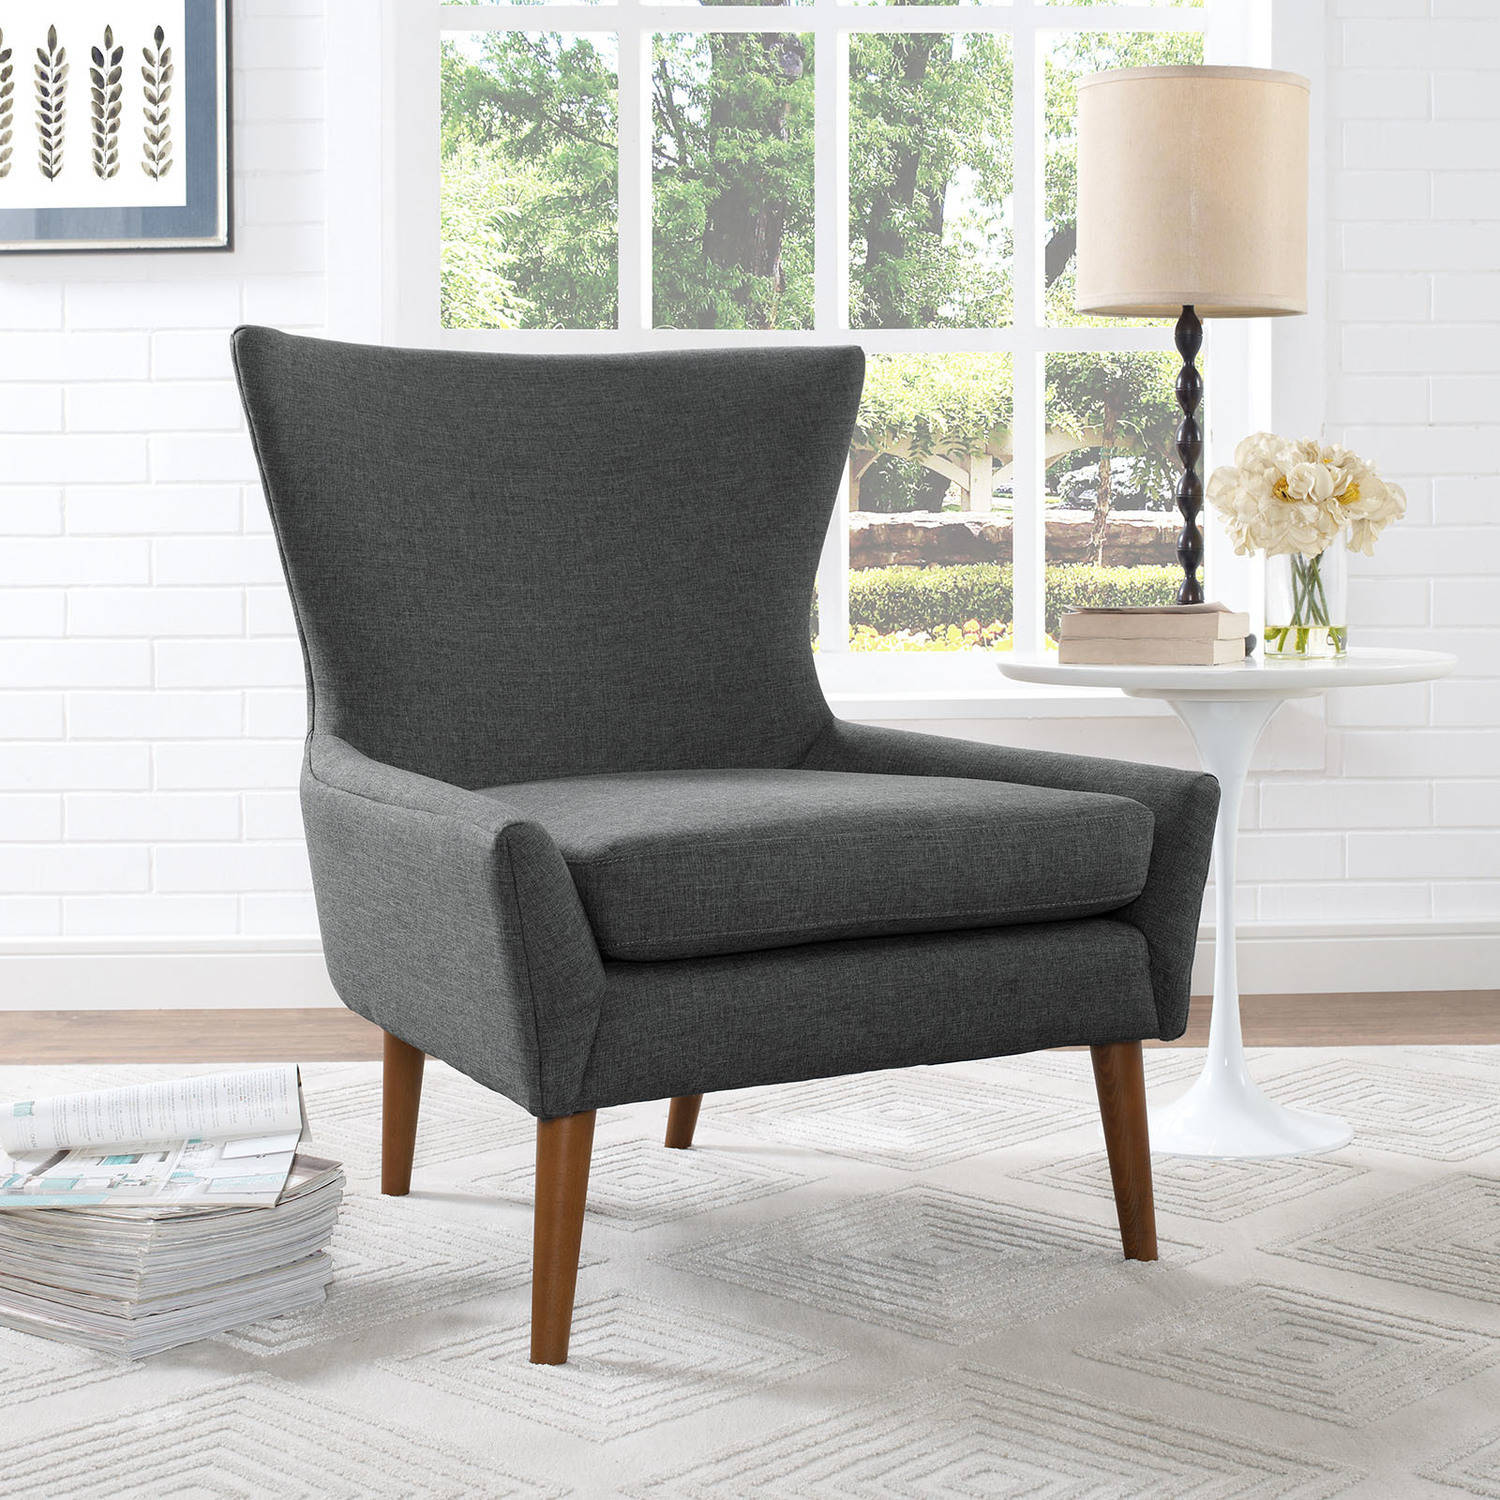 Modway Keen Modern Upholstered Armchair, Multiple Colors by Modway